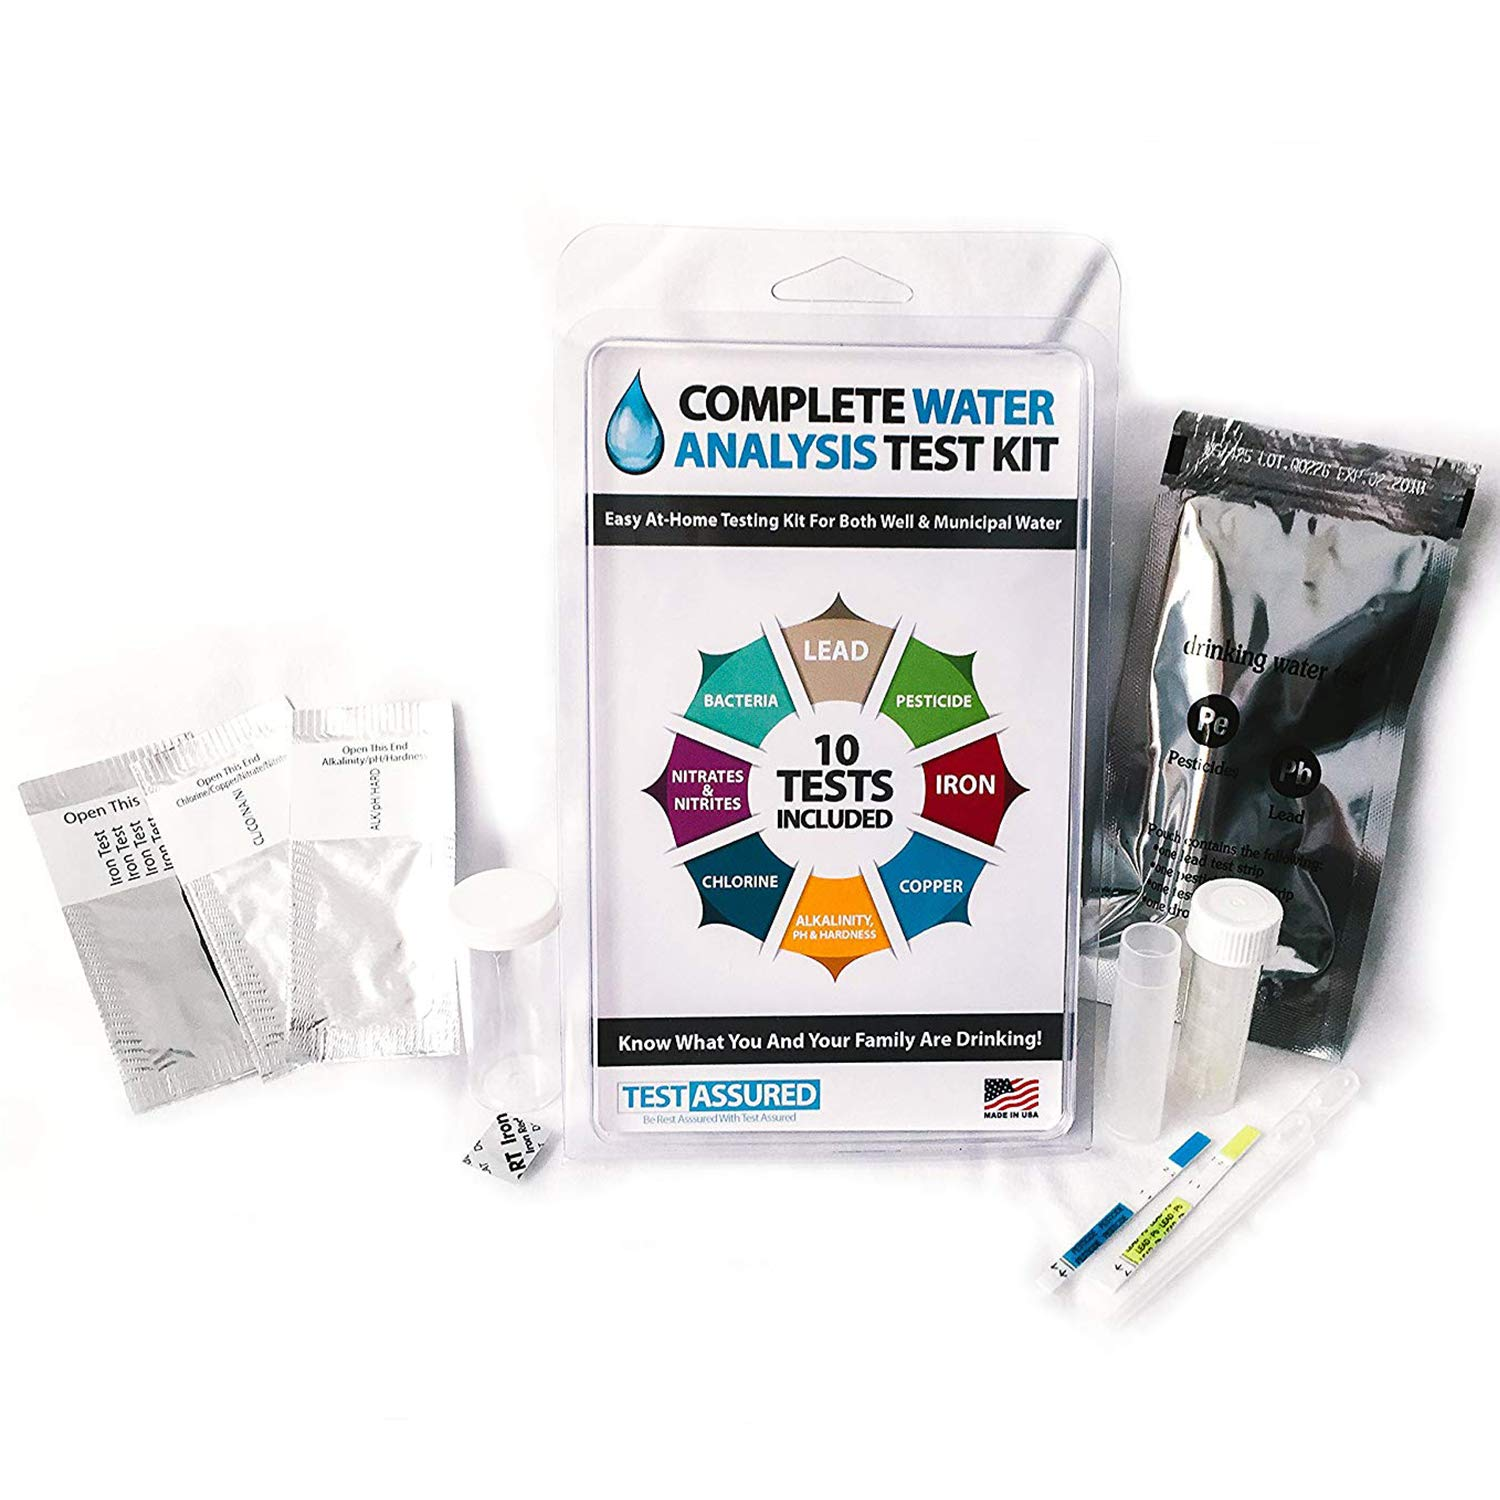 Drinking Water Test Kit - 10 Minute Testing For Lead Bacteria Pesticide Iron Copper and More by Test Assured